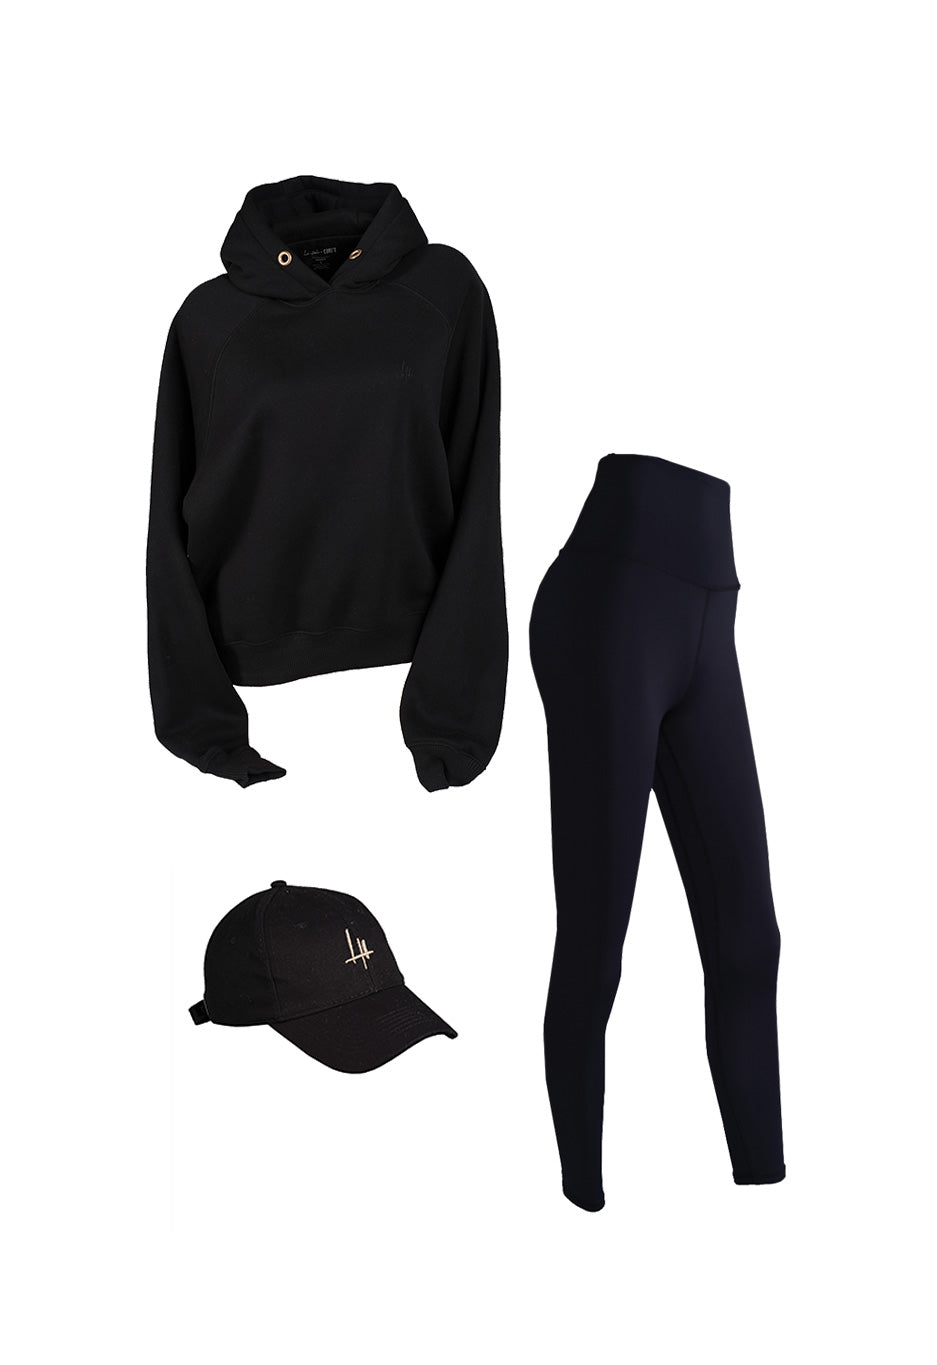 More Toxic Hoodie + Leggings + Cap - Bundle